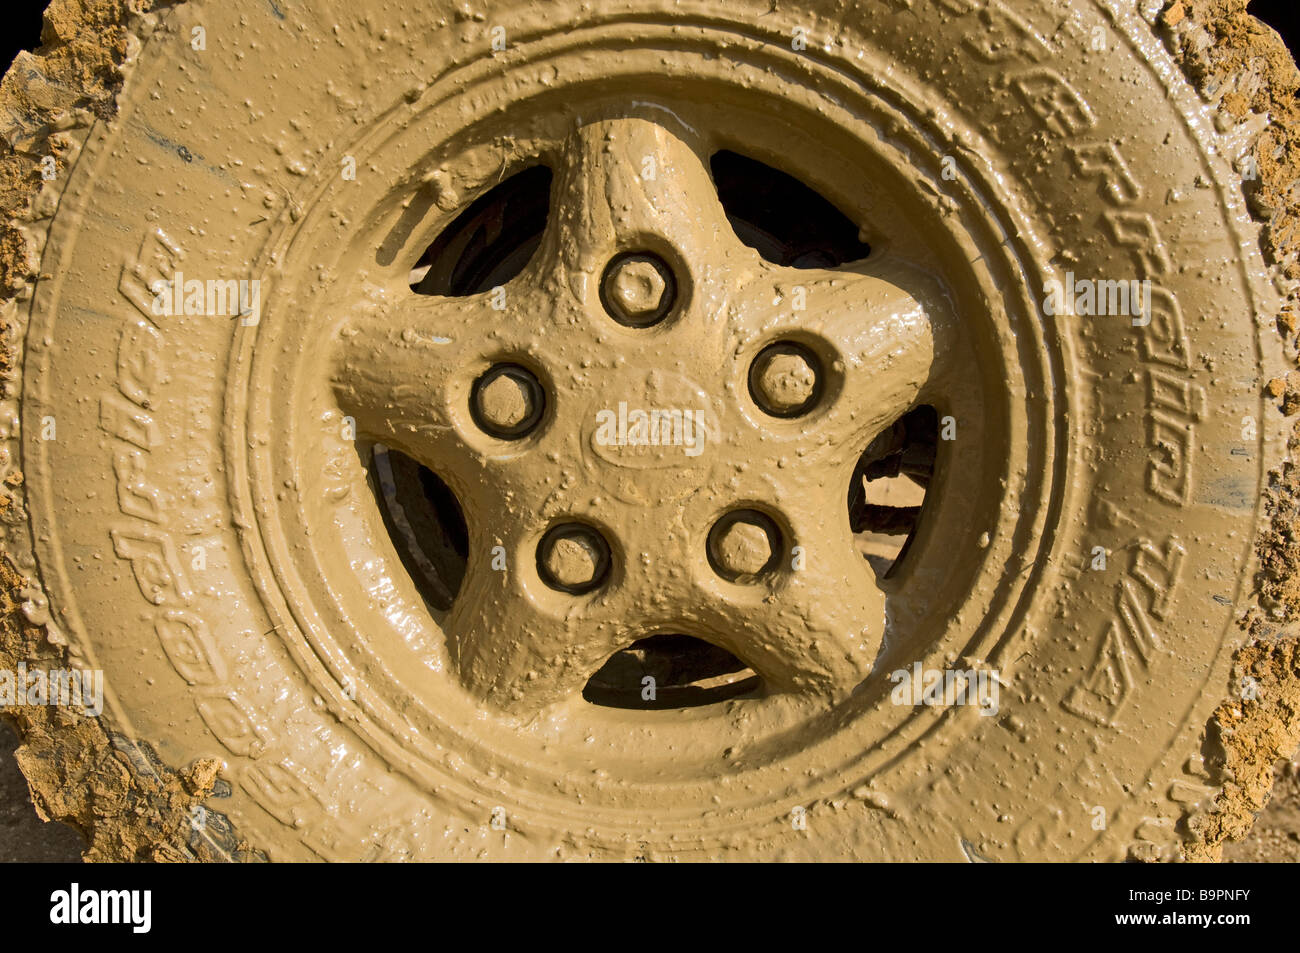 The muddy wheel of a Land Rover Defender 90 after driving through a flooded road - Stock Image